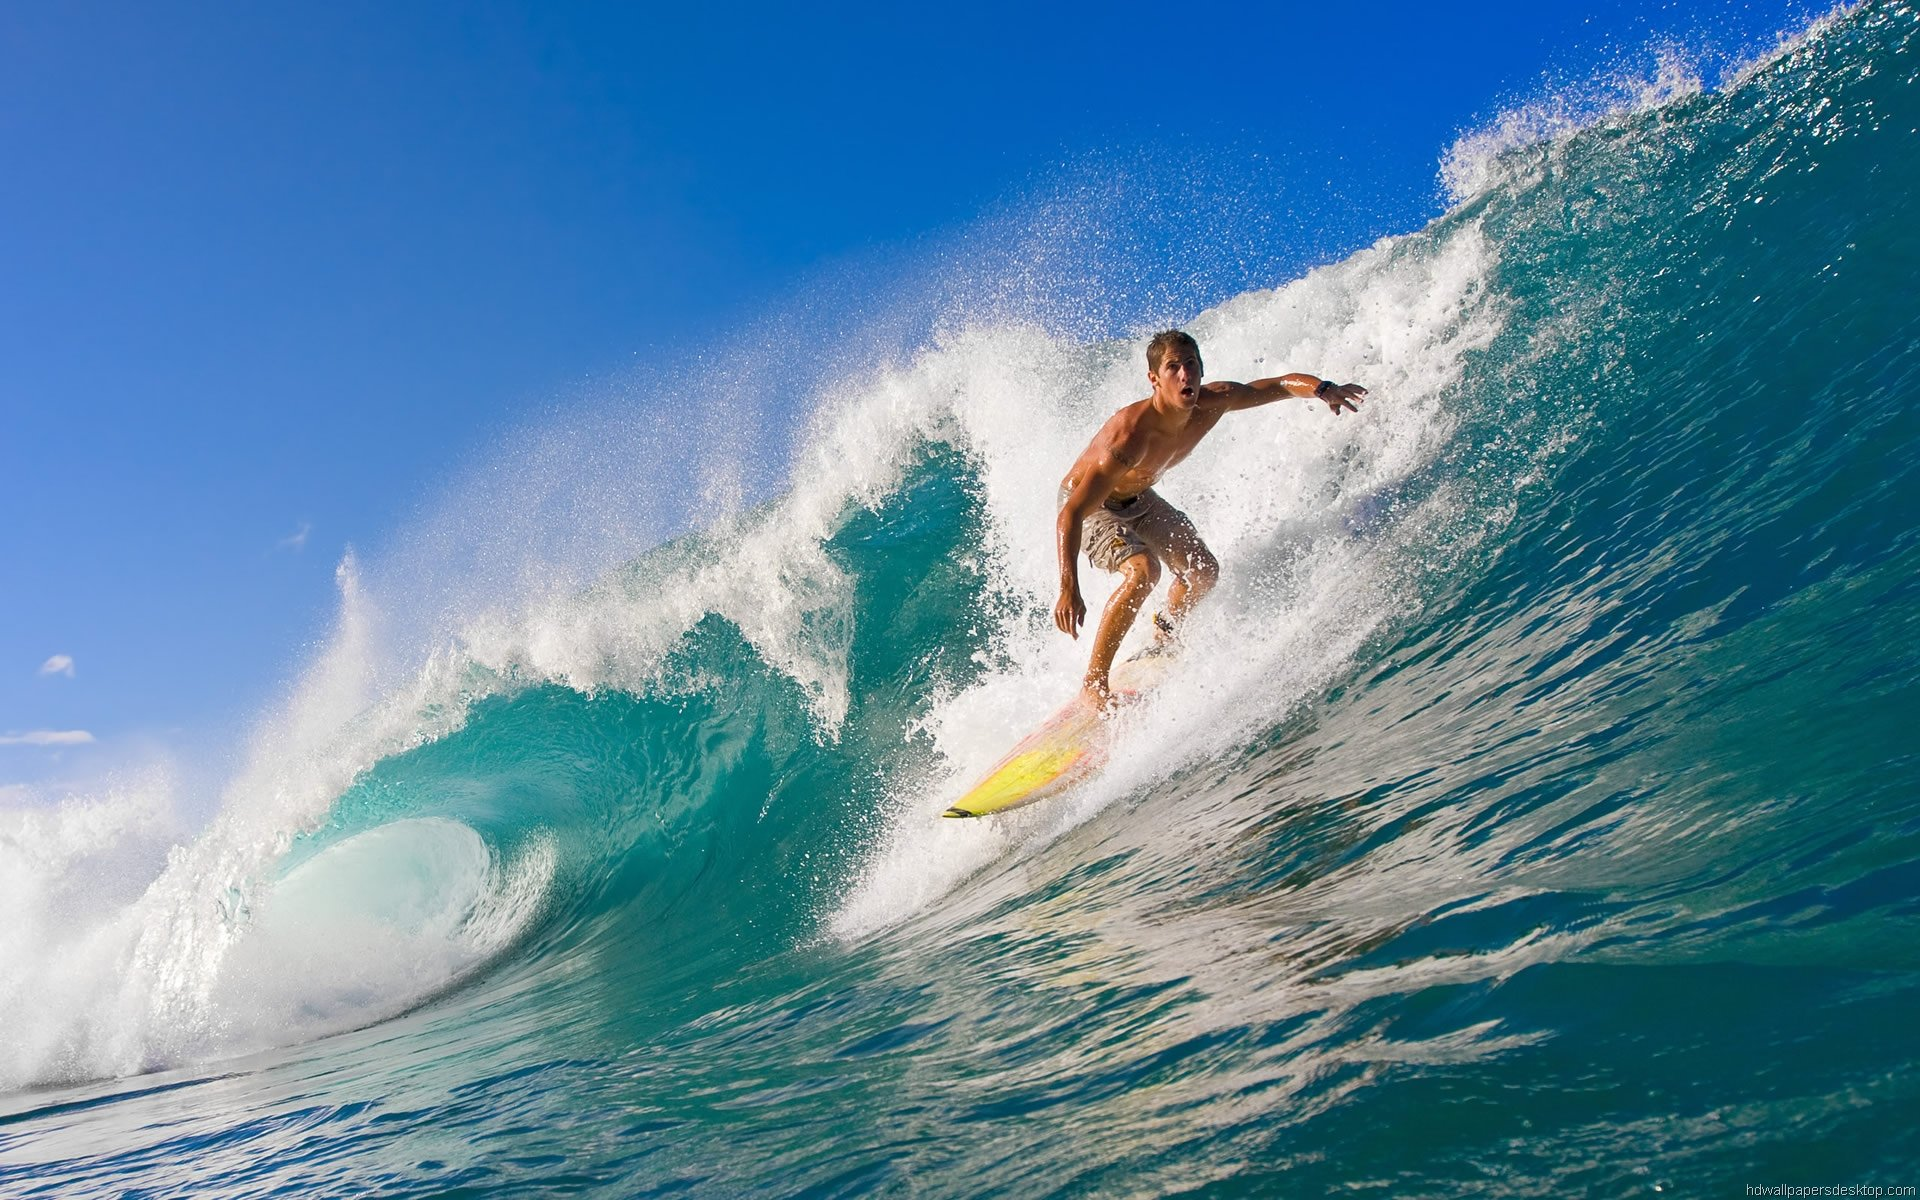 Surfing Wallpaper HD Widescreen Desktop Wallpaper 1920x1200 1920x1200